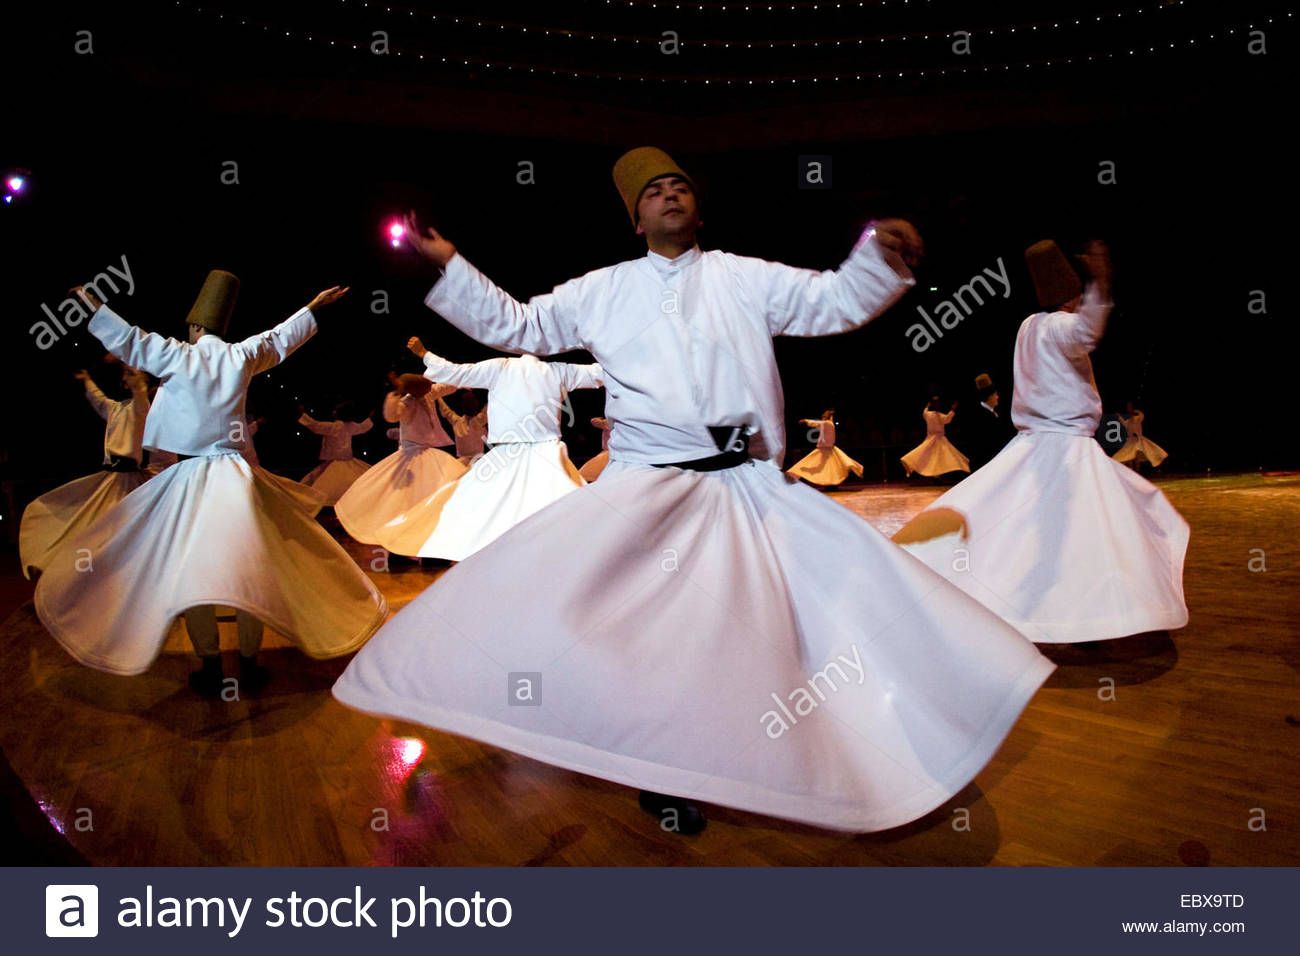 the whirling dervishes in Konya during the Mevlana Festival, Turkey - Stock Image